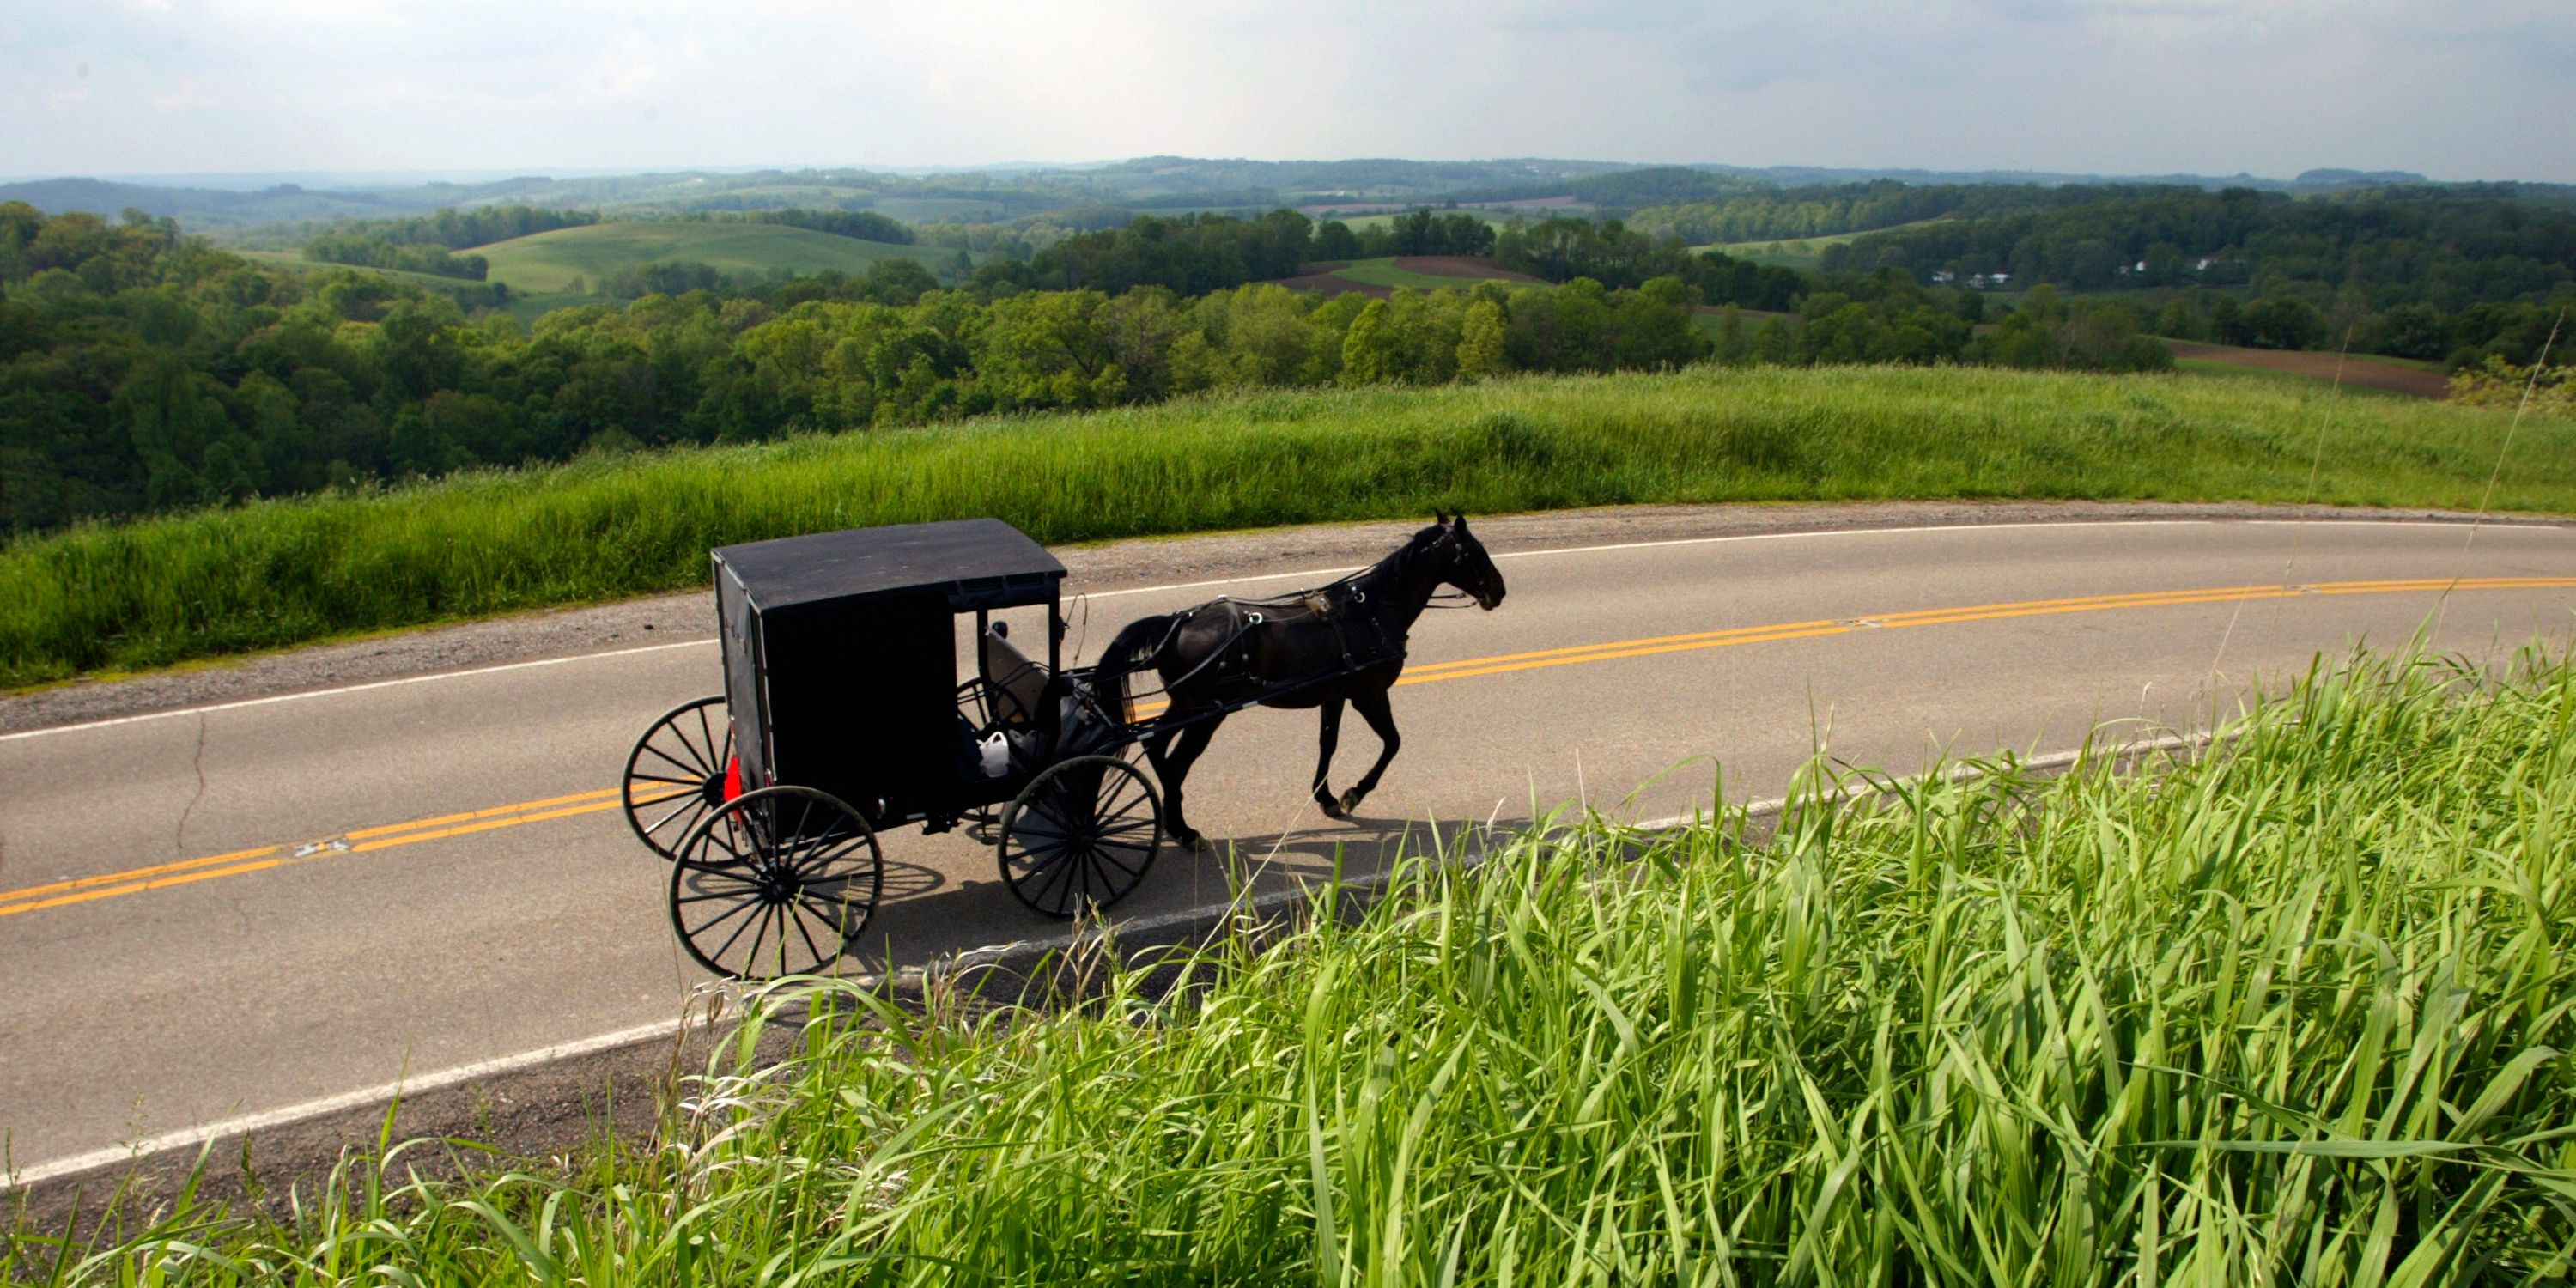 If you're looking to get off the grid for awhile, head to Holmes County, Ohio, home to one of the country's largest Amish communities. Start your trip along State Route 39 in Loudonville, a.k.a. the camp and canoe capital of the world and home to &lt;a href=&quot;http://www.mohicanadventures.com/&quot;&gt;Mohican Adventures&lt;/a&gt;, where you can hit the river for some canoeing, kayaking, or tubing. Continue on to Millersburg and pay a visit to &lt;a href=&quot;http://yodersamishhome.com/#_=_&quot;&gt;Yoder's Amish Home&lt;/a&gt;, a working Amish farm, for a guided tour and buggy ride. Feeling peckish? Visit &lt;a href=&quot;http://heinis.com/&quot;&gt;Heini's Cheese Chalet&lt;/a&gt; and stock up. Drive 20 miles on to Wilmot where you'll find the &lt;a href=&quot;http://www.wildernesscenter.org/&quot;&gt;Wilderness Center&lt;/a&gt;, a nonprofit with more than 10 miles of hiking trails, plus a planetarium and a wildlife observation room.    <!--EndFragment-->